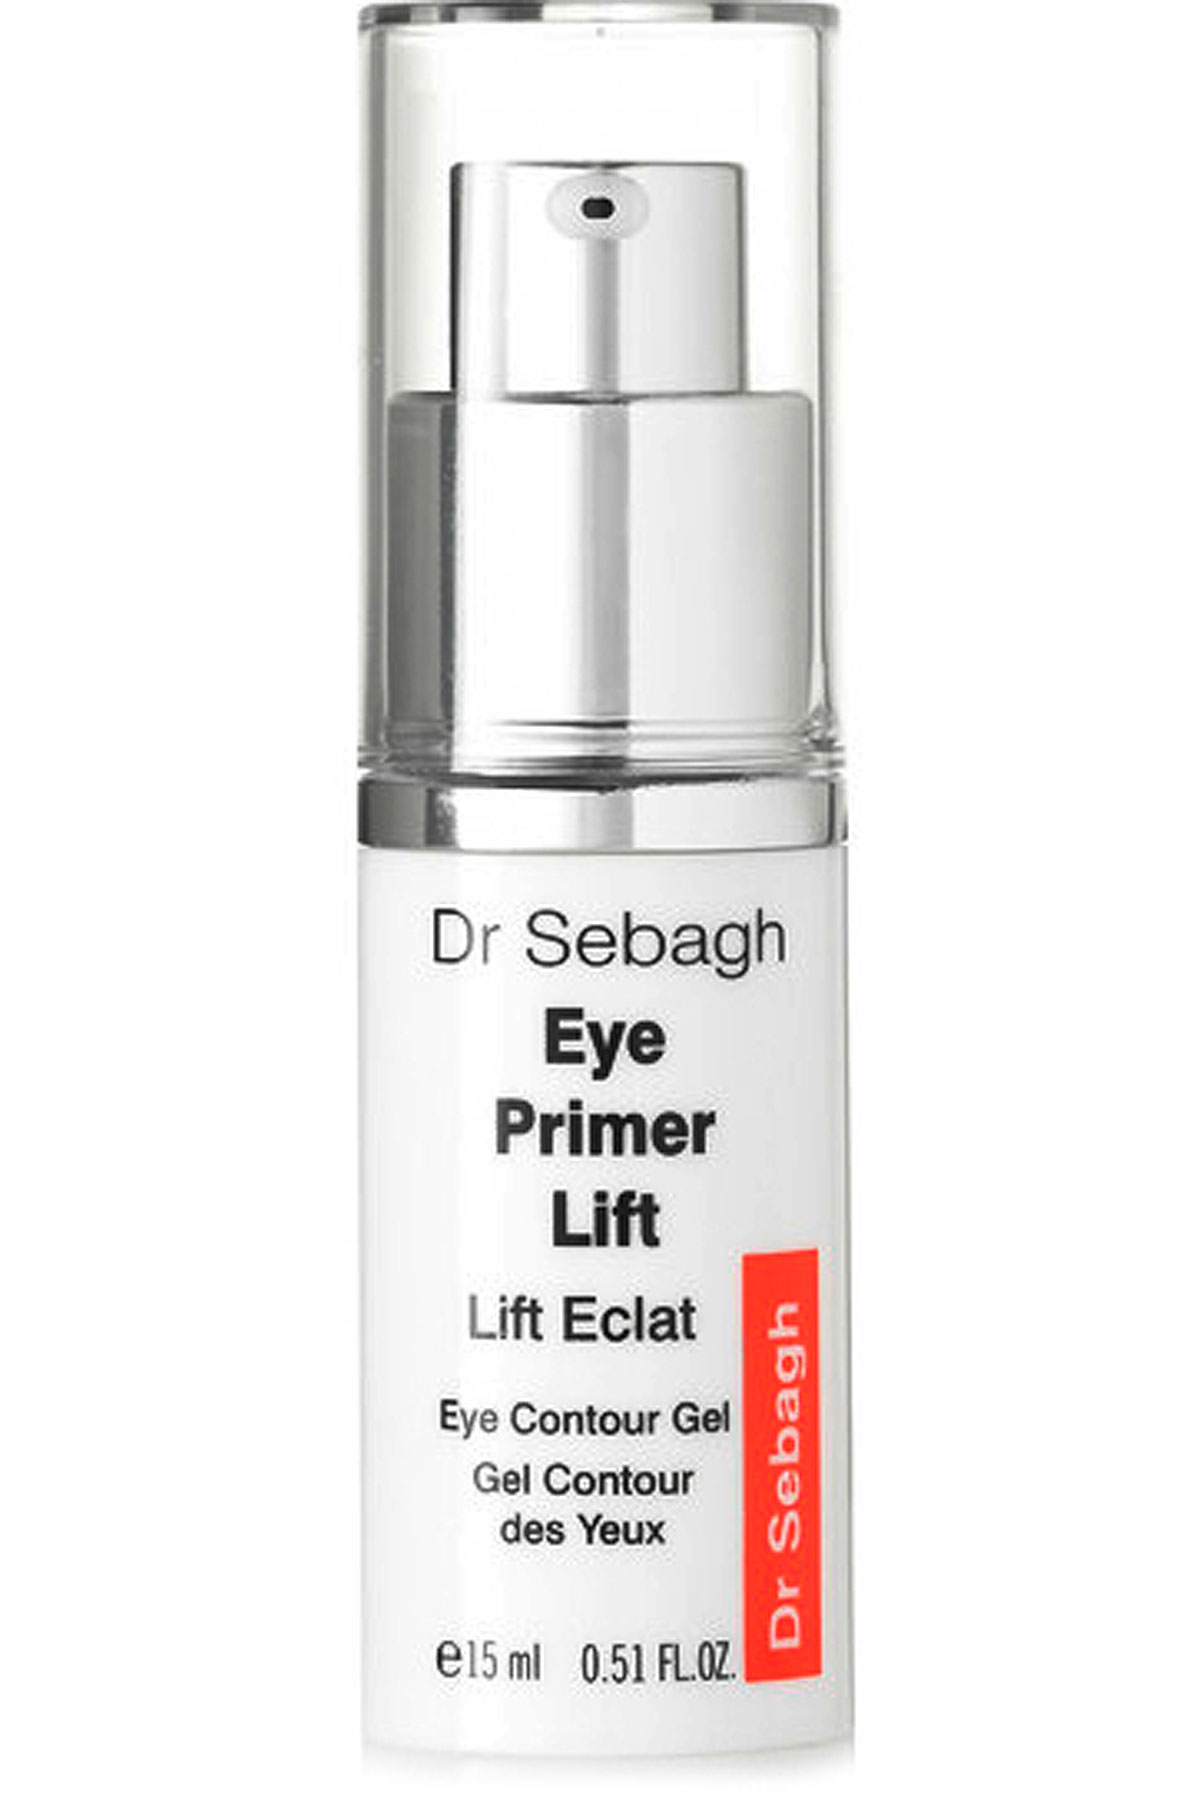 Dr Sebagh Beauty for Women, Eye Primer Lift - 15 Ml, 2019, 15 ml